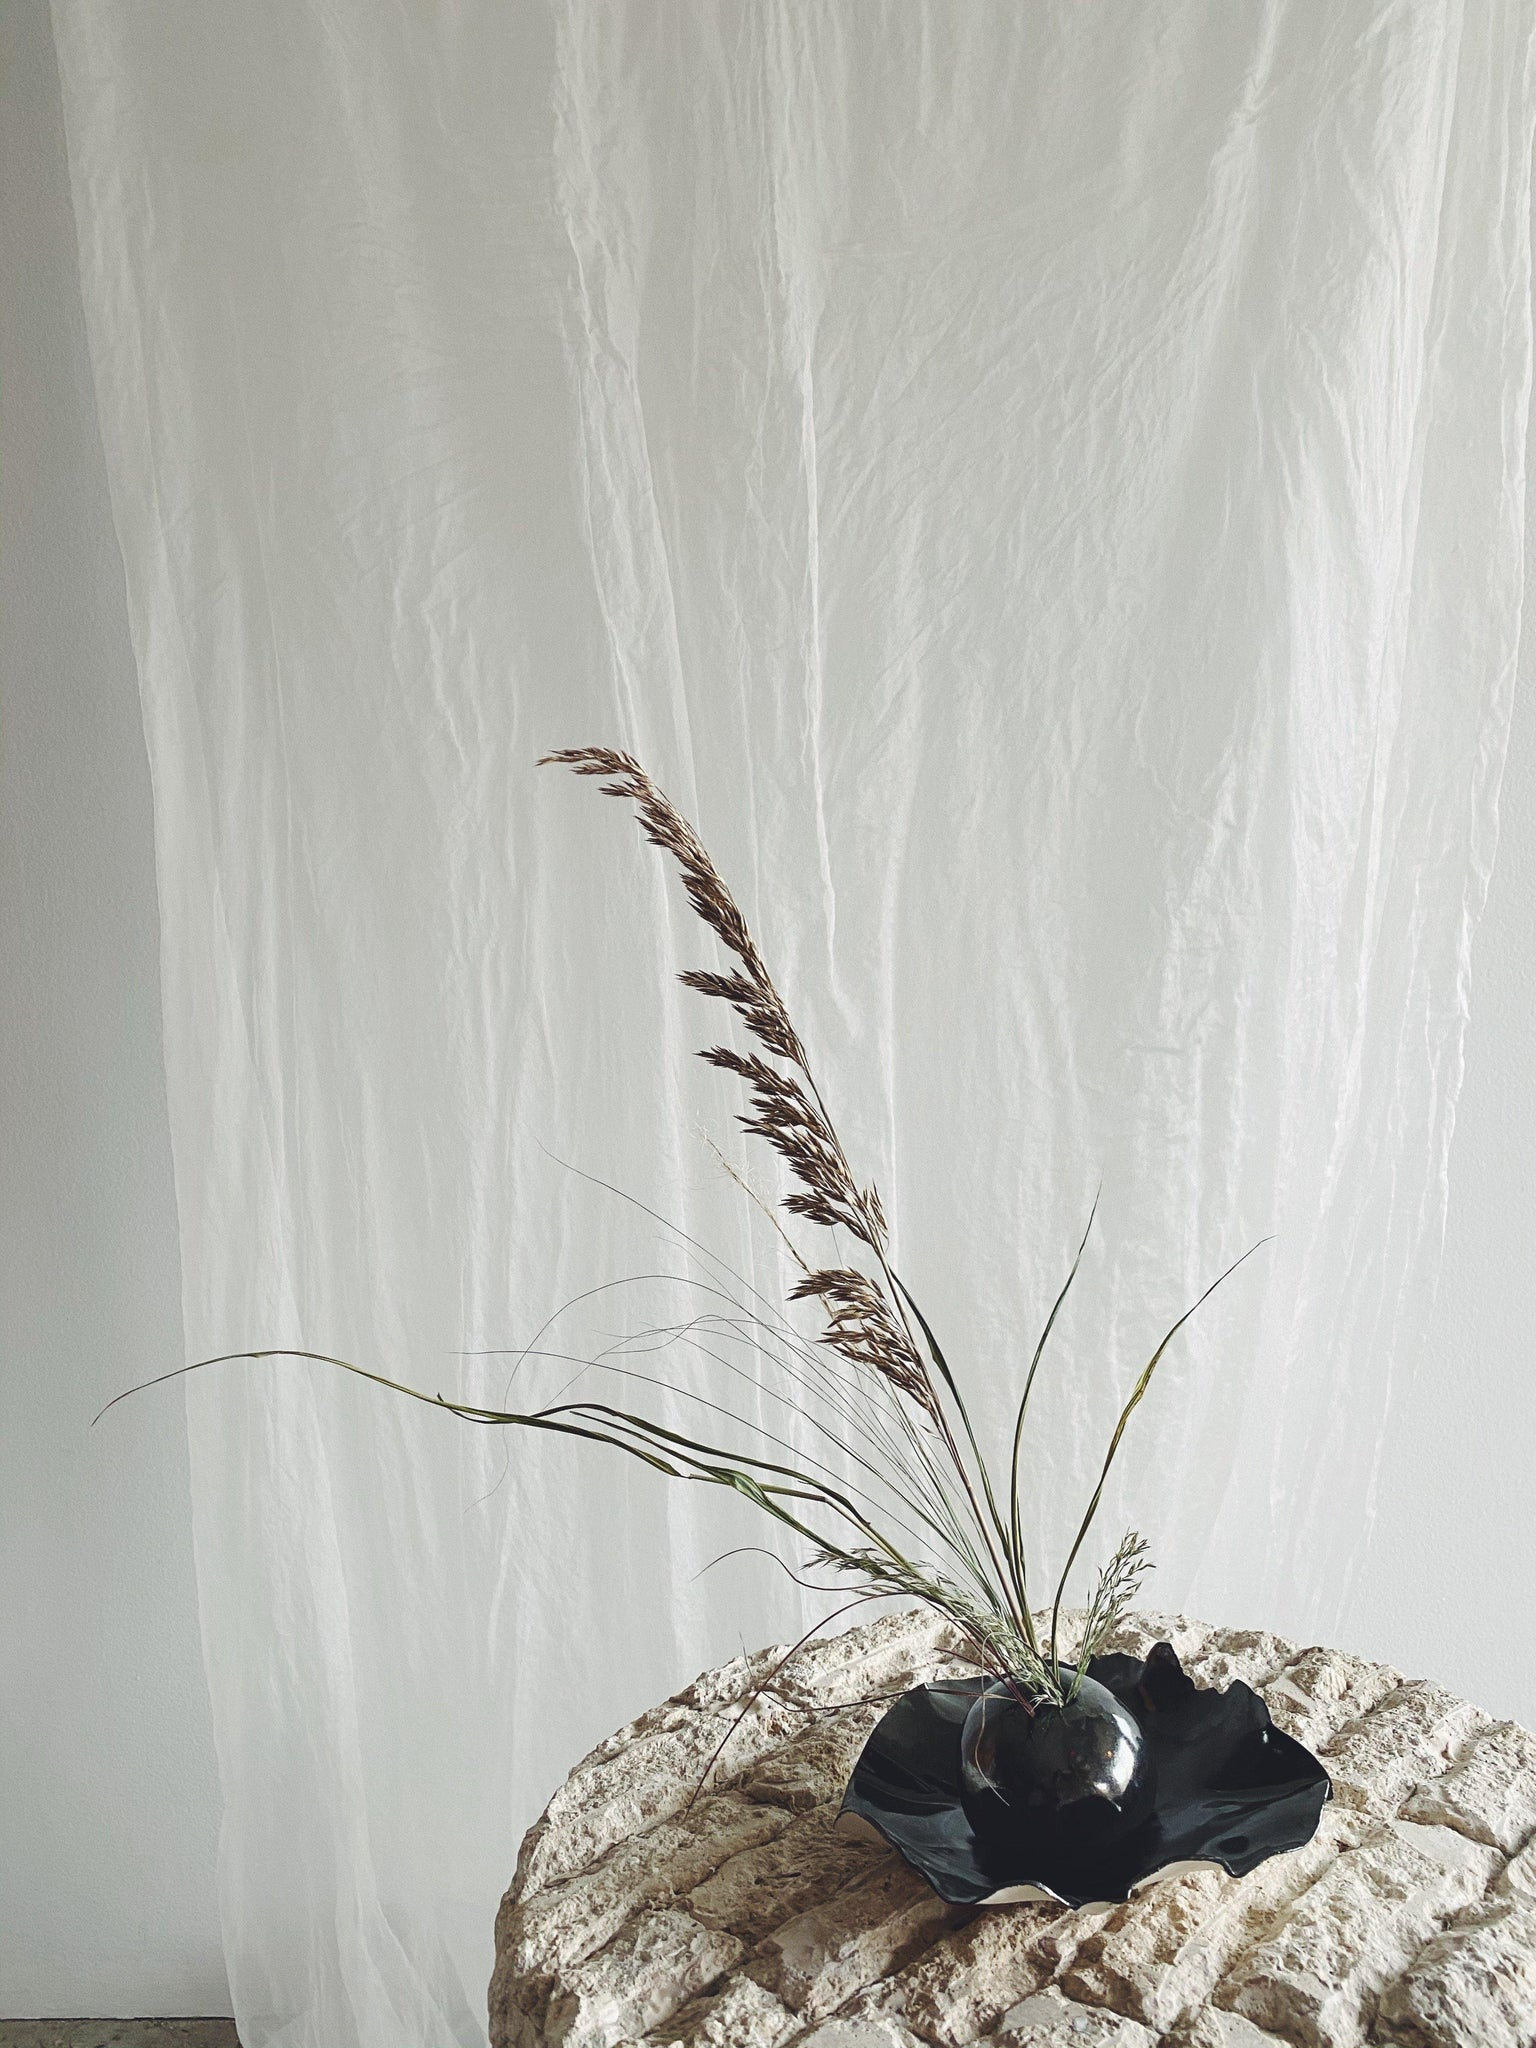 Vases - Nathalee Paolinelli Ikebana Orb with Grasses -  Small Metallic Tray - Nathalee Paolinelli - The Wild Bunch Florist - Vancouver Flower Shop Delivery